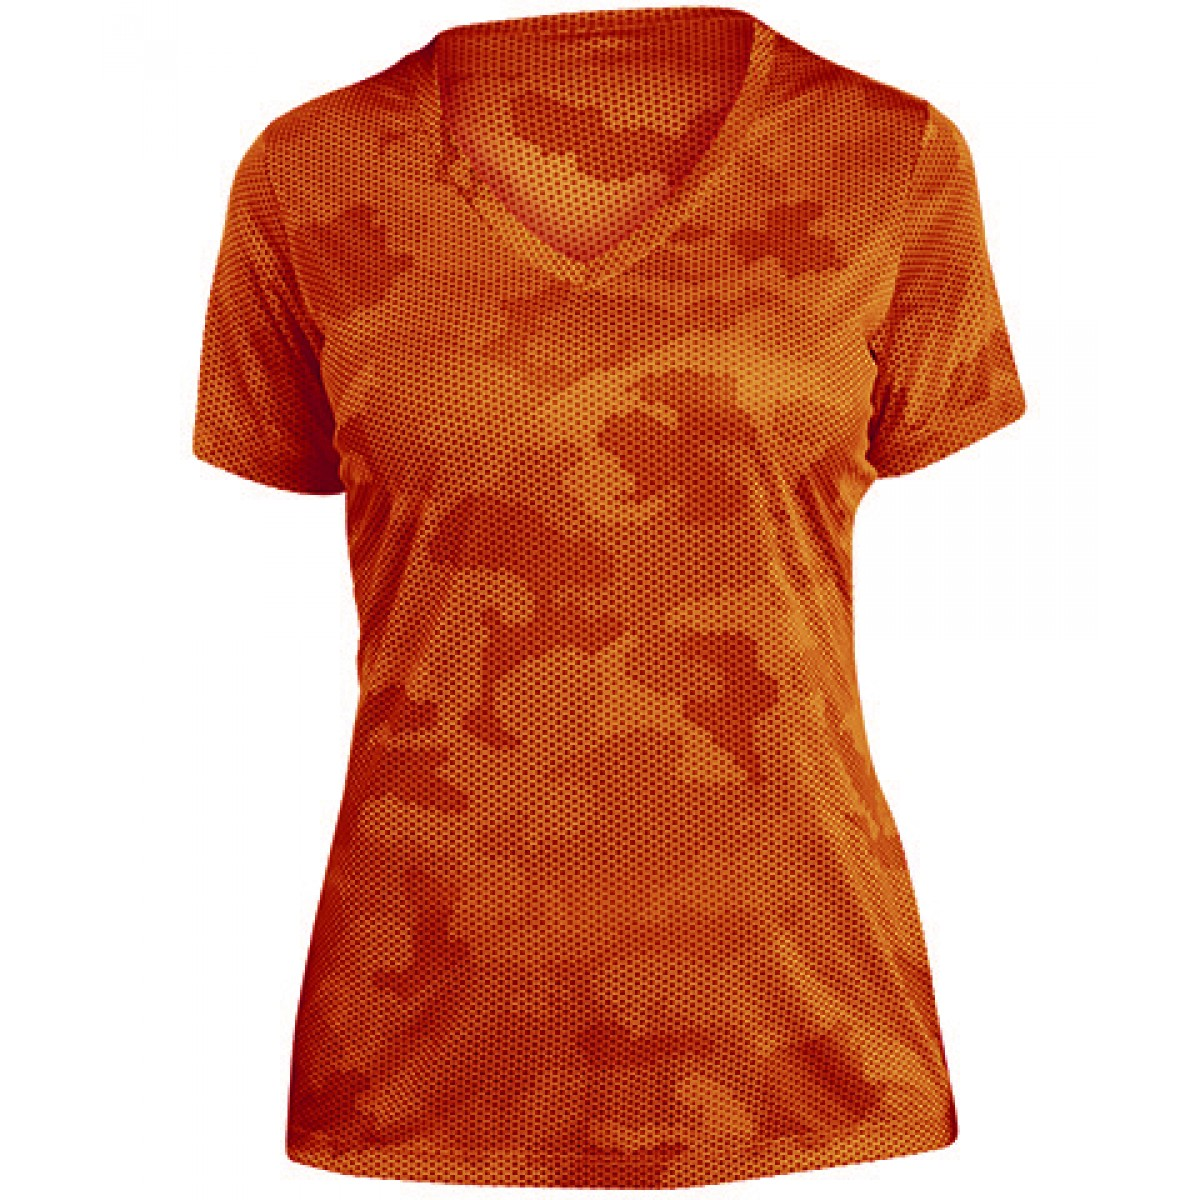 Ladies CamoHex V-Neck Tee-Orange-XL